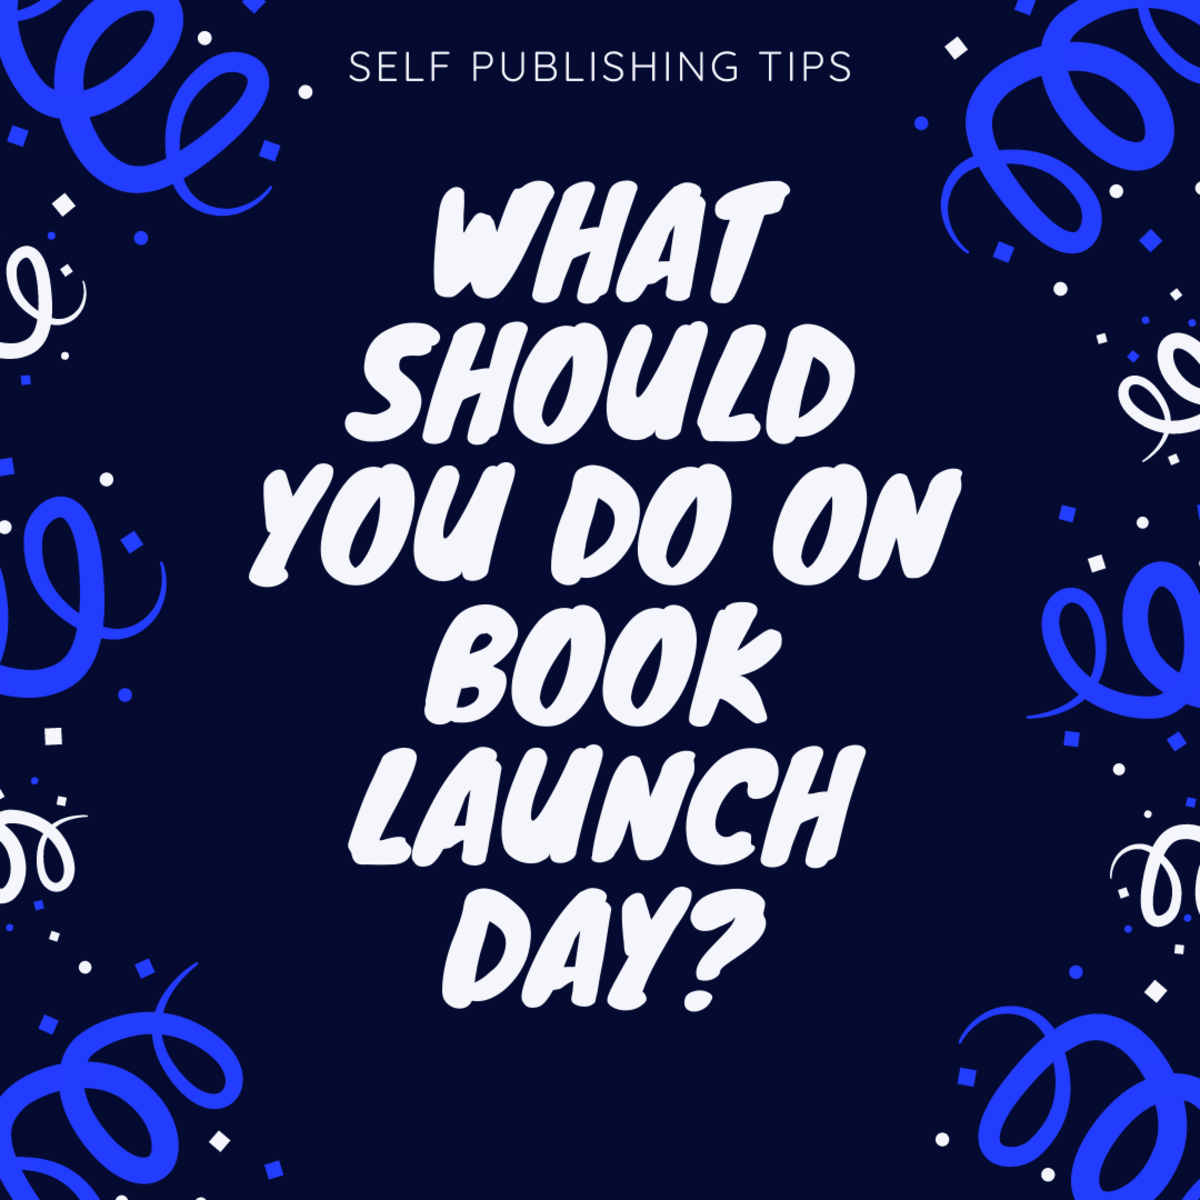 What Should You Do on Book Launch Day for Your Self Published Book?